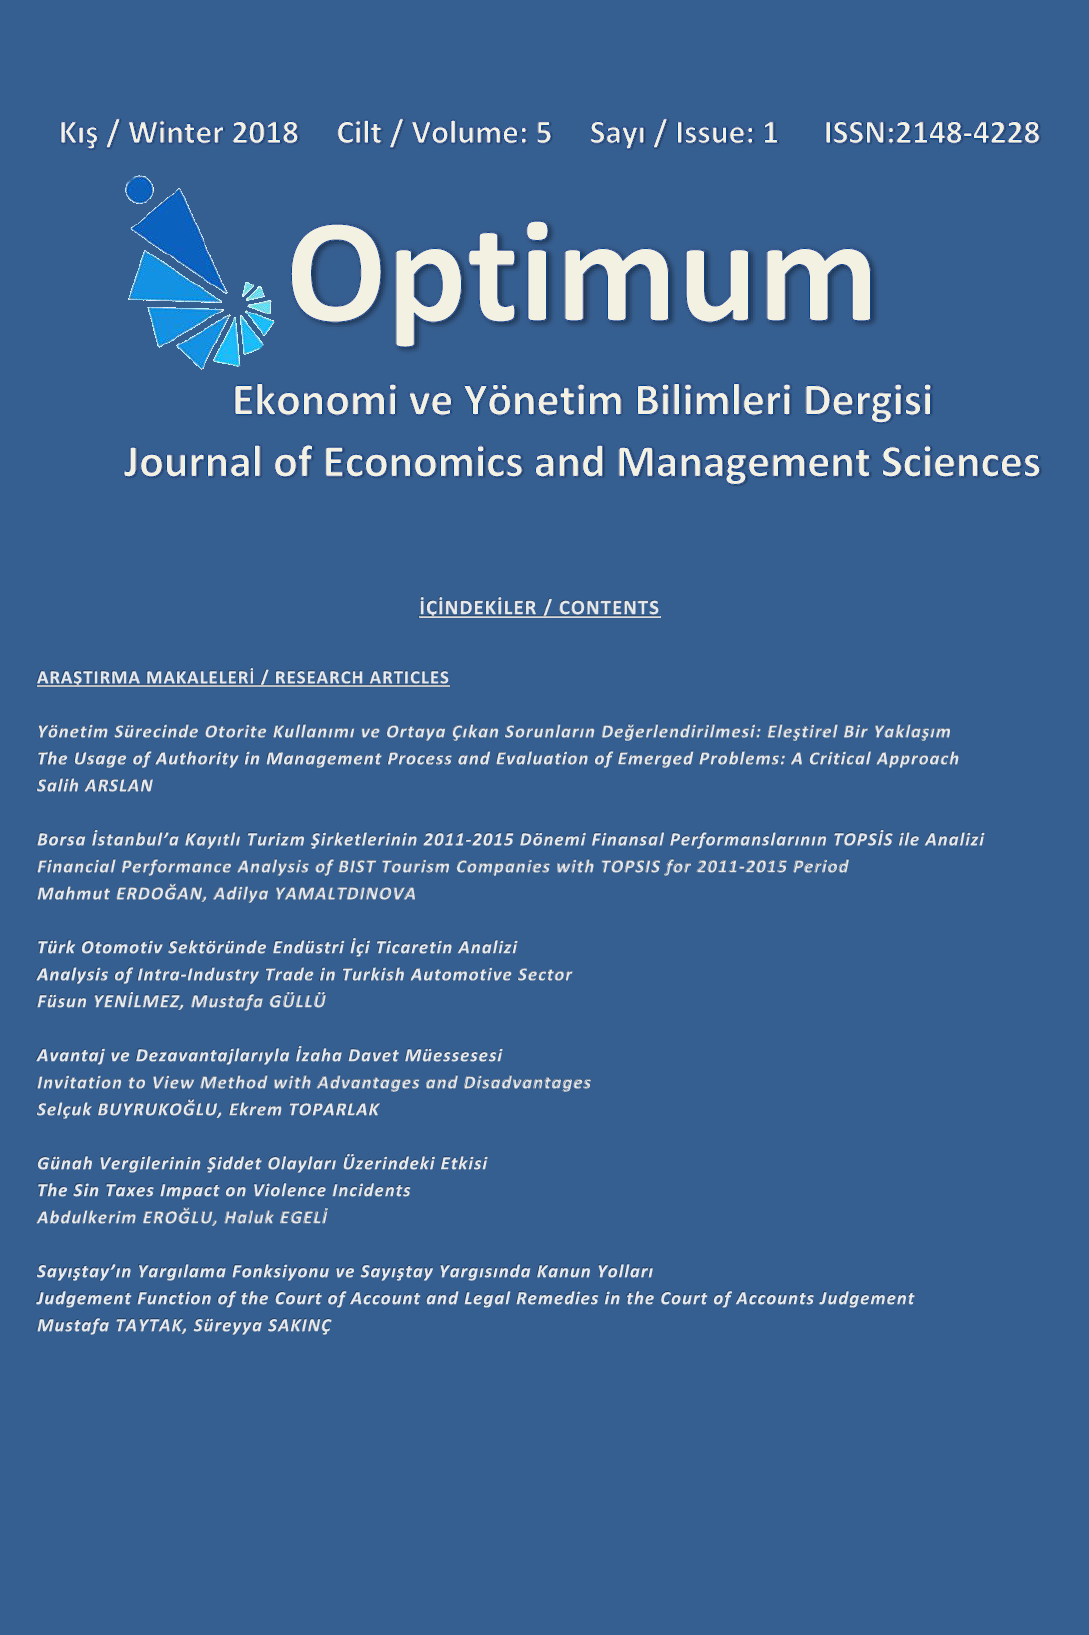 Optimum Journal of Economics and Management Sciences